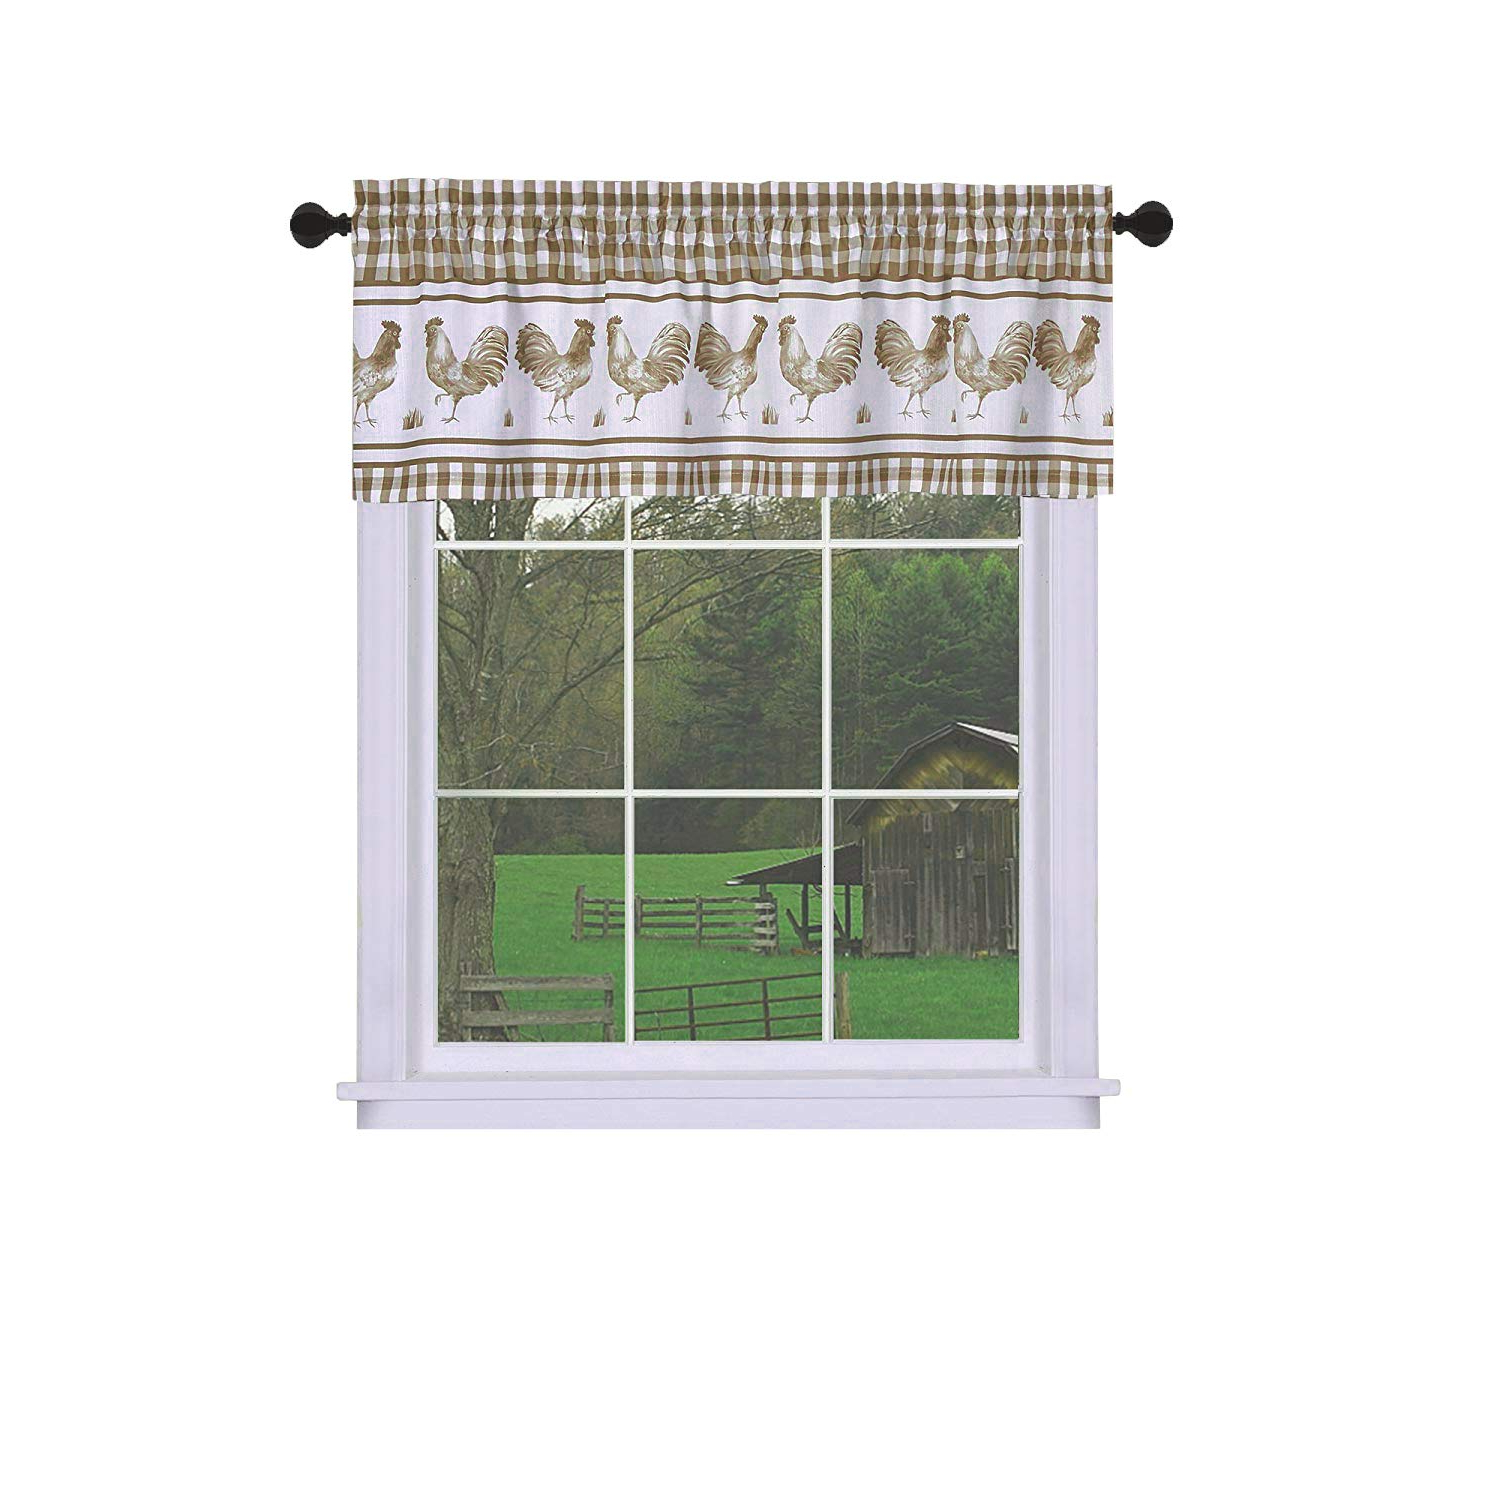 Widely Used Goodgram Plaid Rooster Window Curtain Valance – Assorted Colors (Navy) Throughout Barnyard Buffalo Check Rooster Window Valances (View 20 of 20)